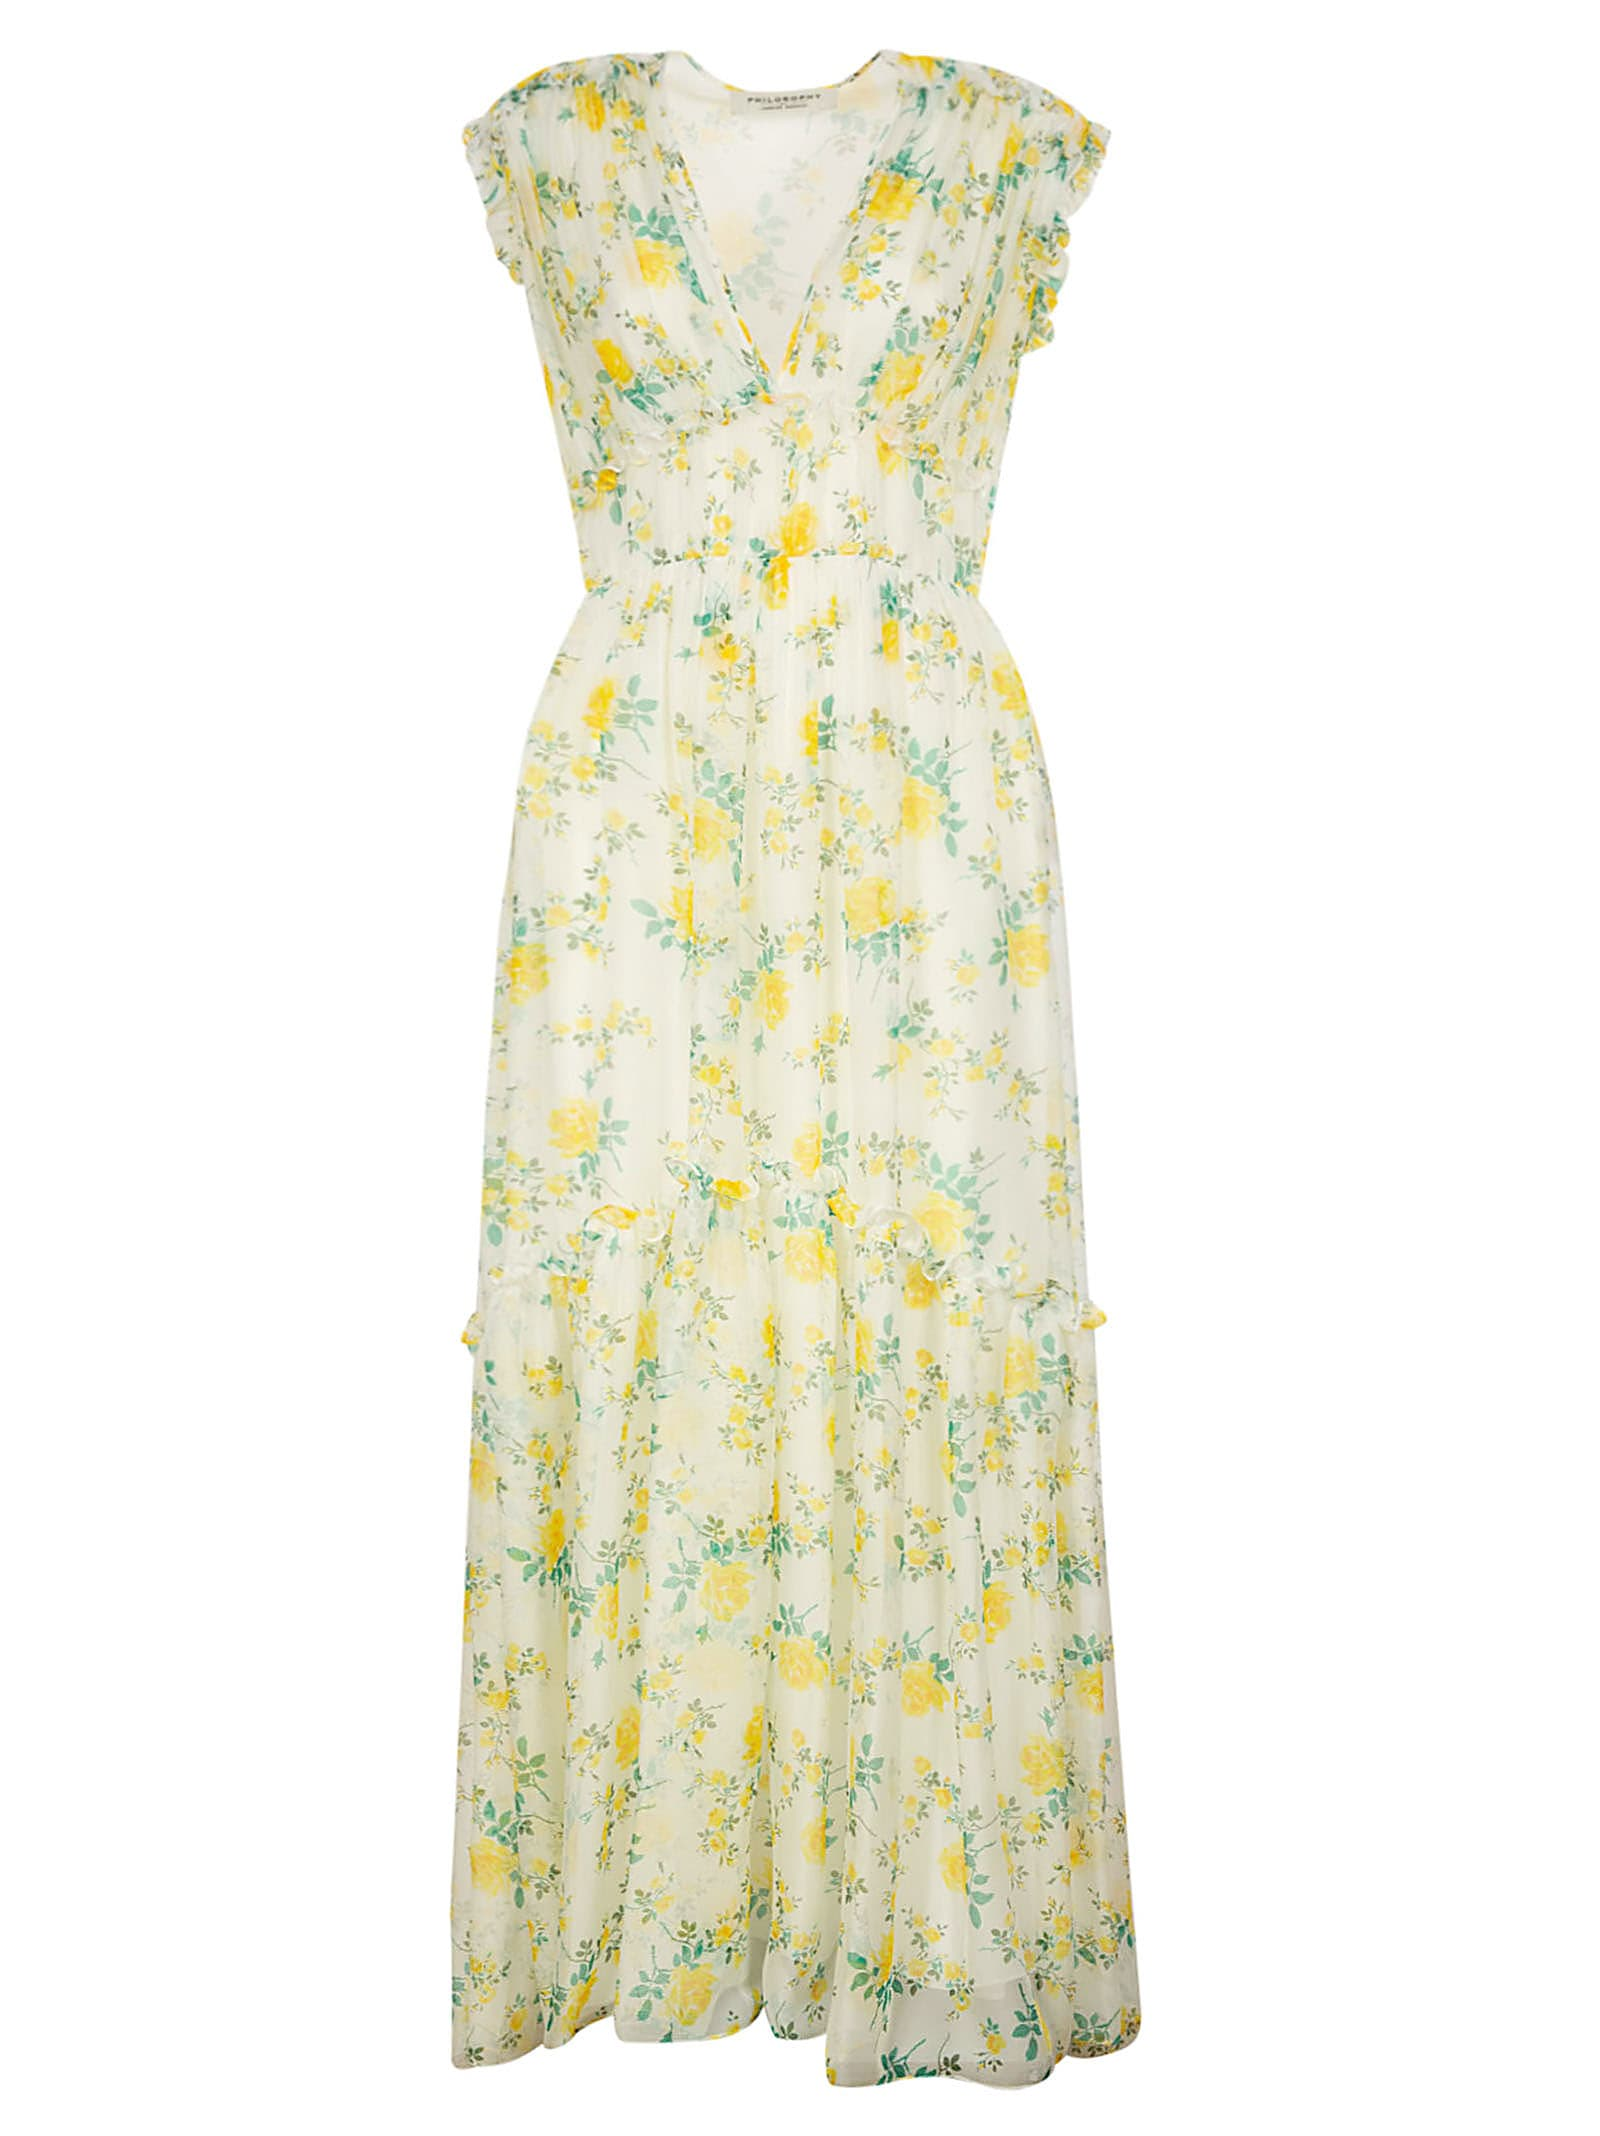 Buy Philosophy di Lorenzo Serafini Floral Sleeveless Maxi Dress online, shop Philosophy di Lorenzo Serafini with free shipping